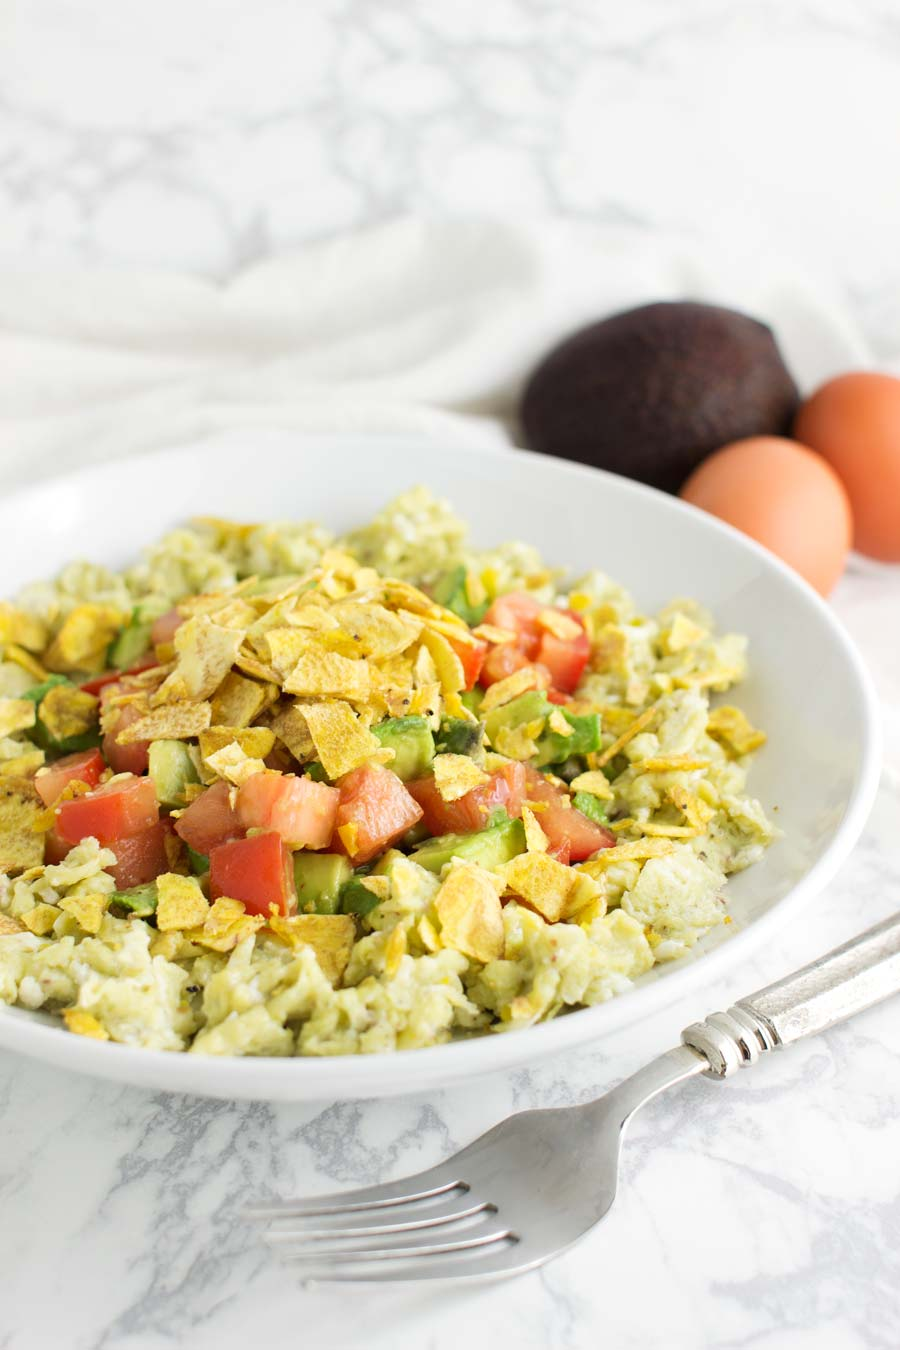 Tex-Mex Scrambled Eggs Migas recipe from acleanplate.com #paleo #glutenfree #dairyfree